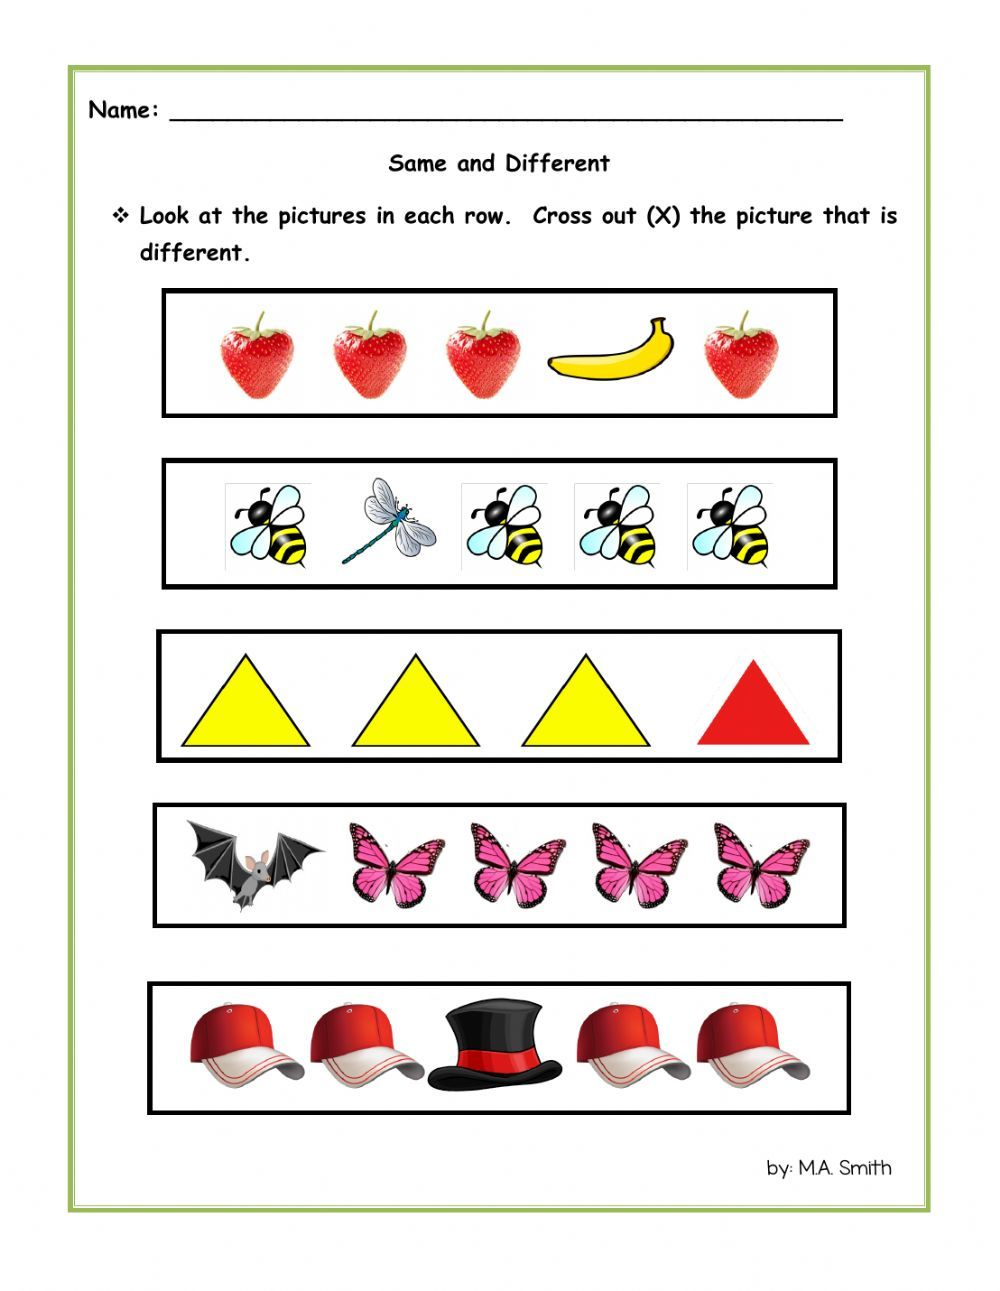 Same And Different Interactive And Downloadable Worksheet You Can Do The Exercises Online Or D Free Preschool Worksheets Kids Worksheets Printables Worksheets